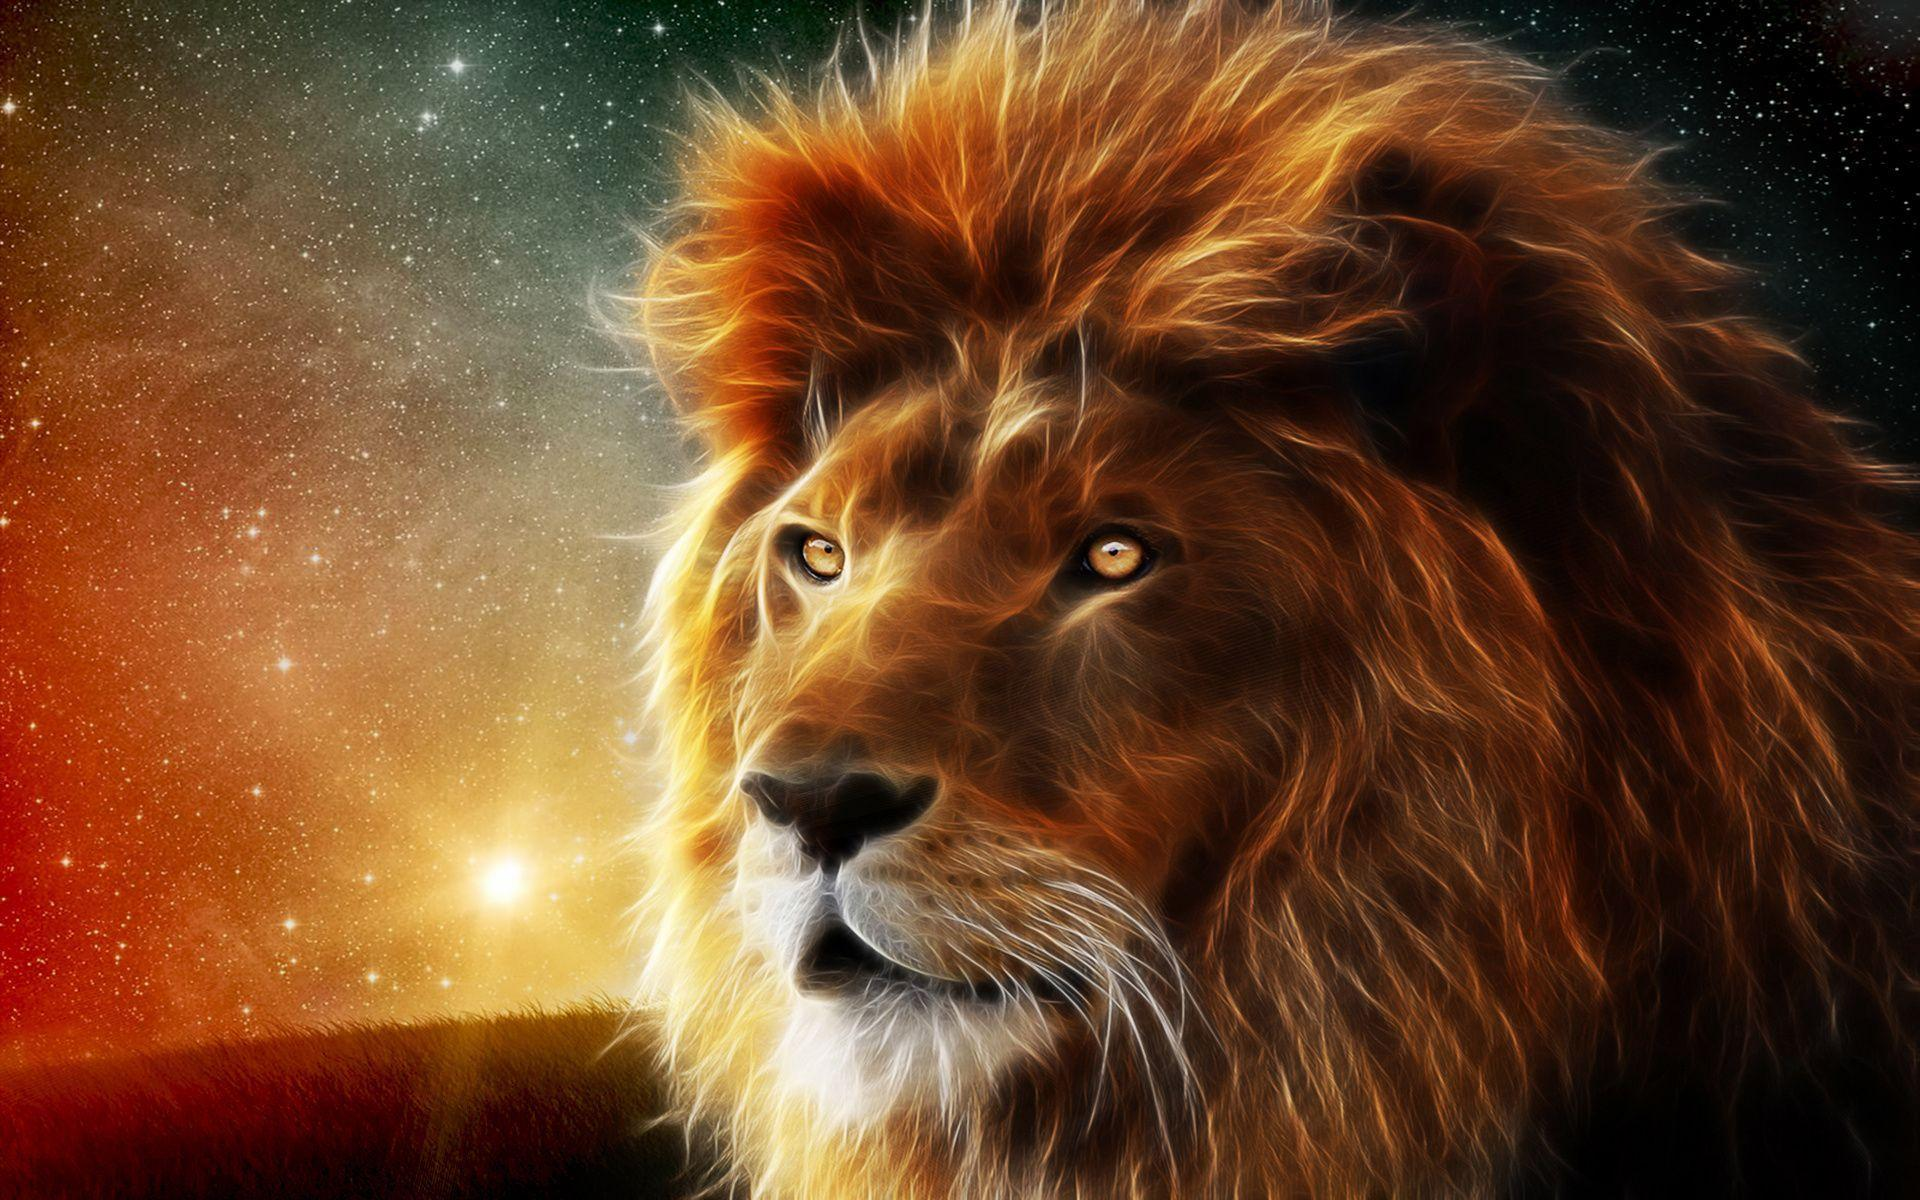 Most Downloaded Lion King Wallpapers - Full HD wallpaper search